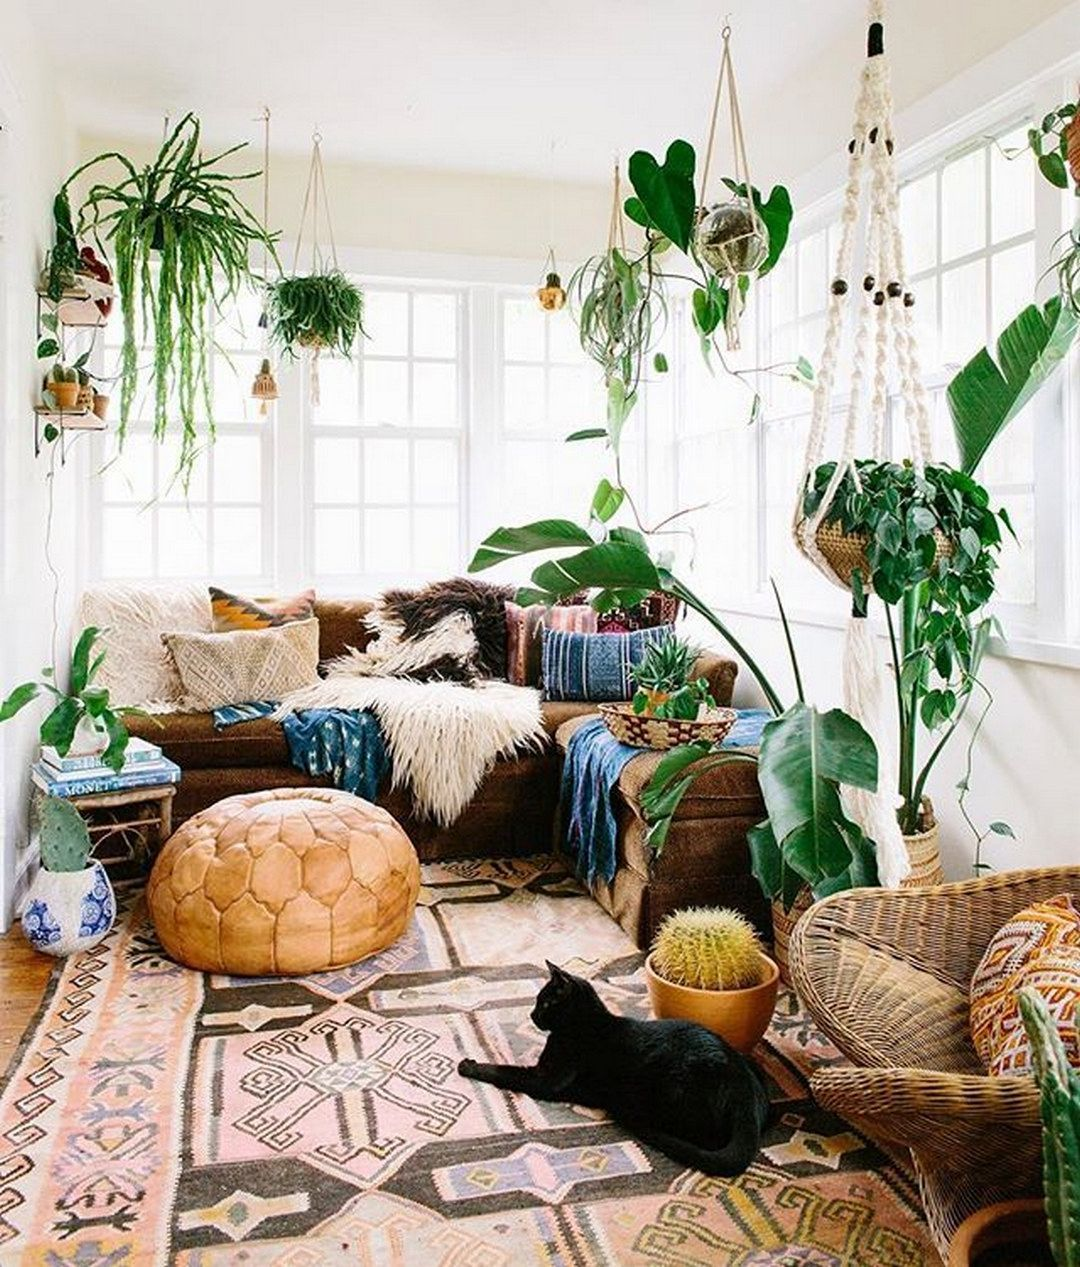 Here Are 45 Awesome Ways To Pump Some Bohemian Style Influence Into Your Bedroom With A Modern Bohemian Style Decor Bohemian Living Room Bohemian Bedroom Decor